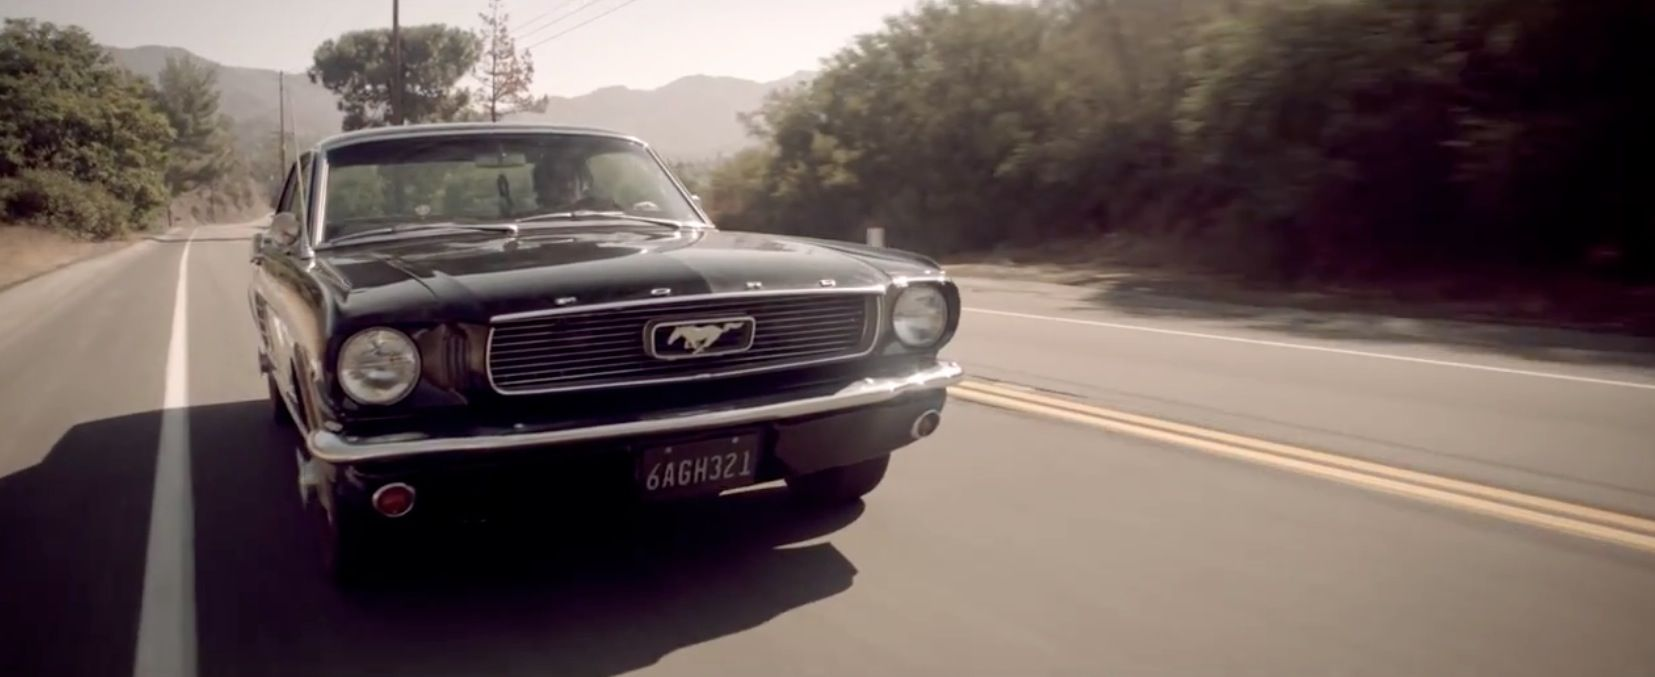 Ford mustang 1966 in the one that got away by katy perry 2011 ford